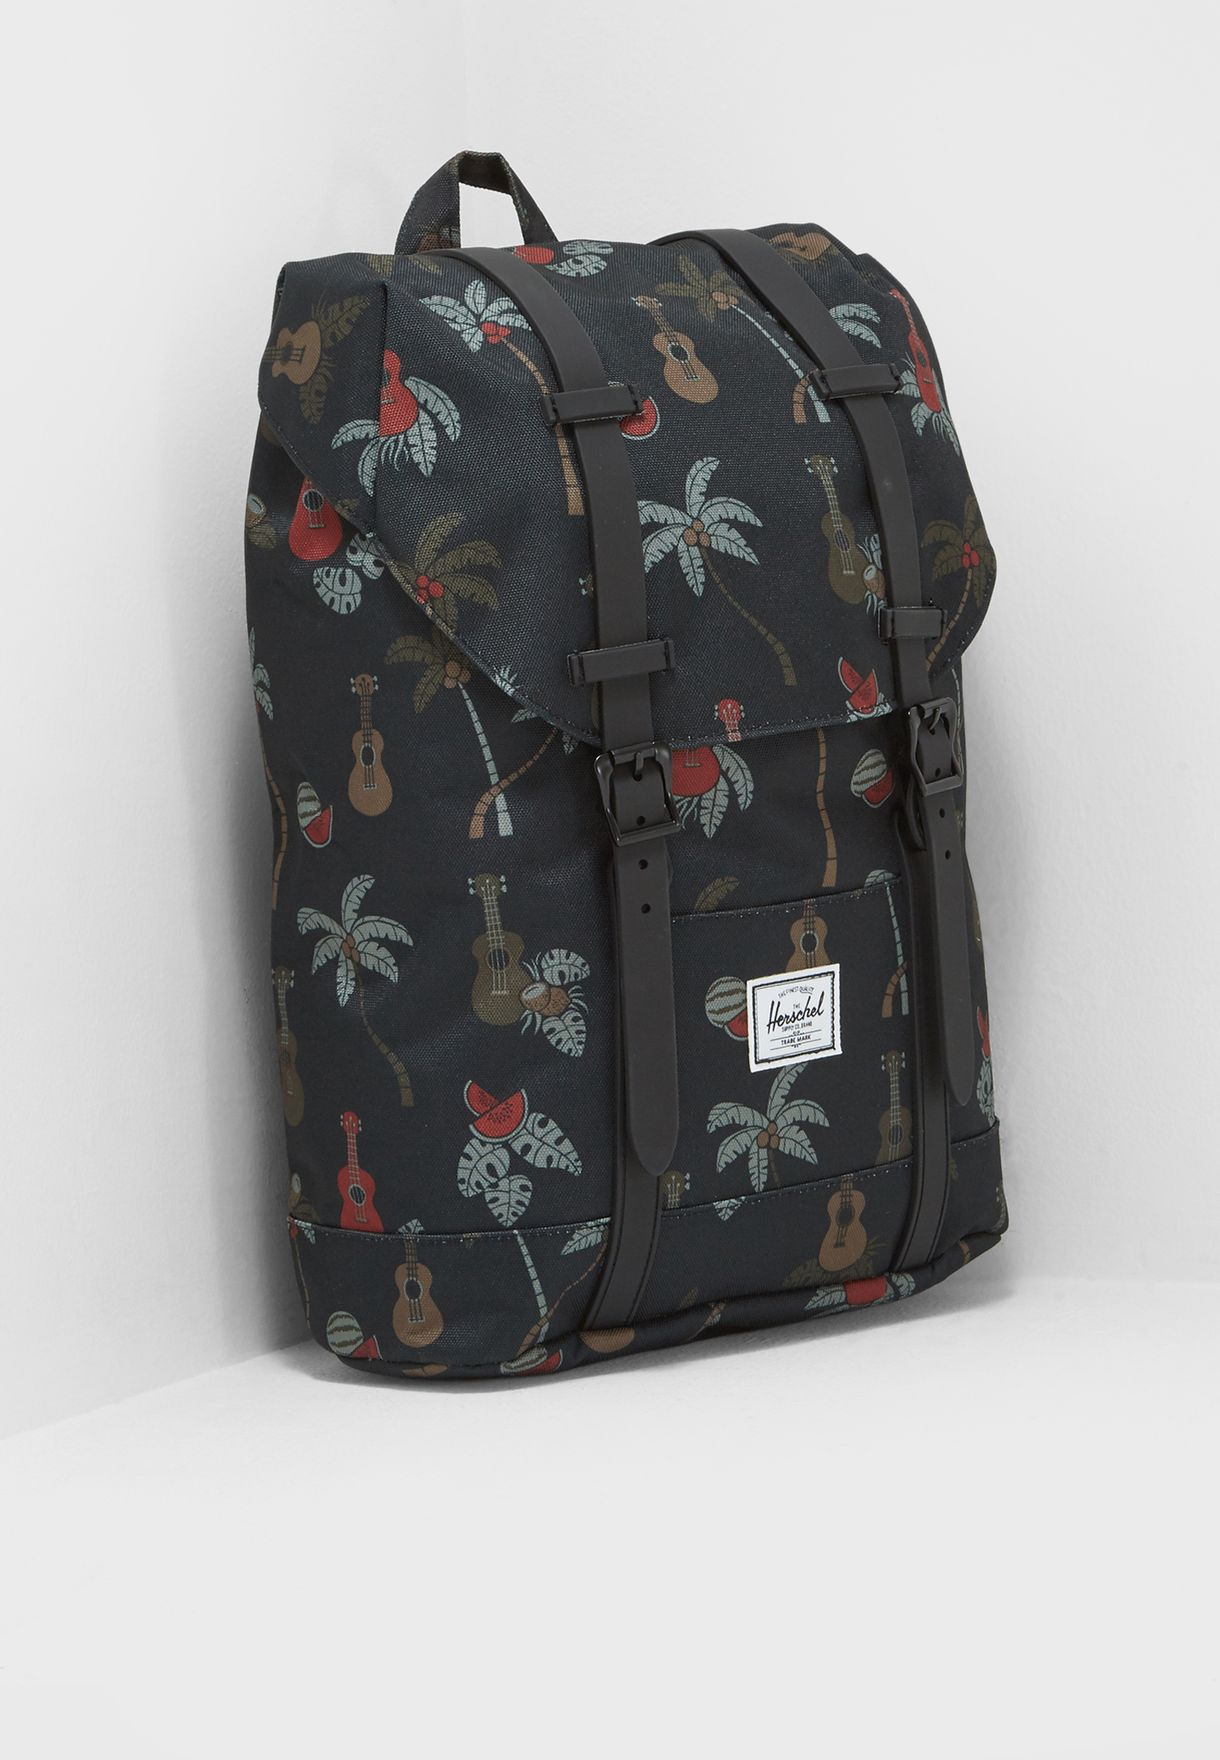 Shop Herschel prints Retreat Youth Backpack 10248-01909-OS for Kids ... 98bfdd300b